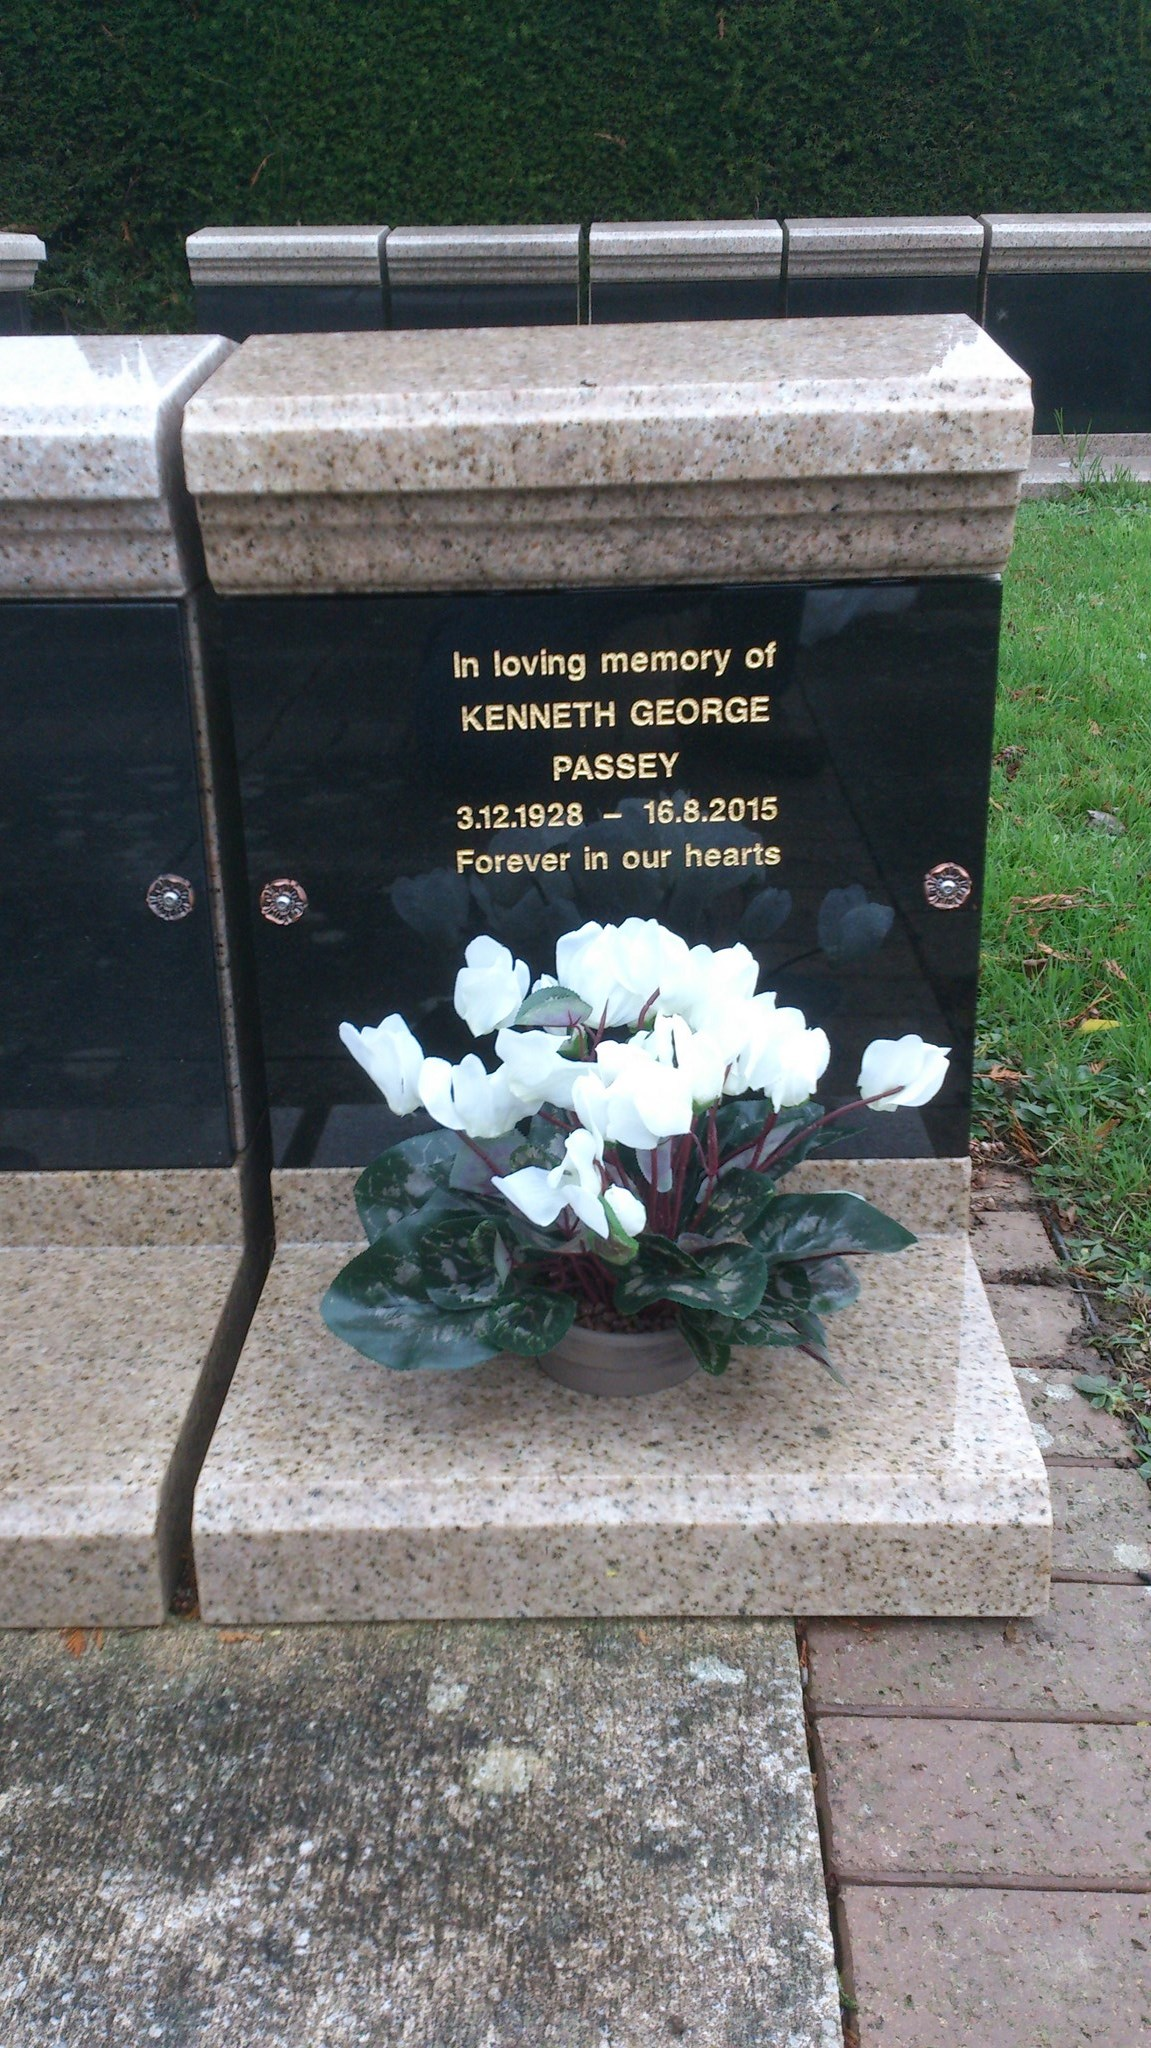 Kenneth's resting place at Tonbridge Cemetery